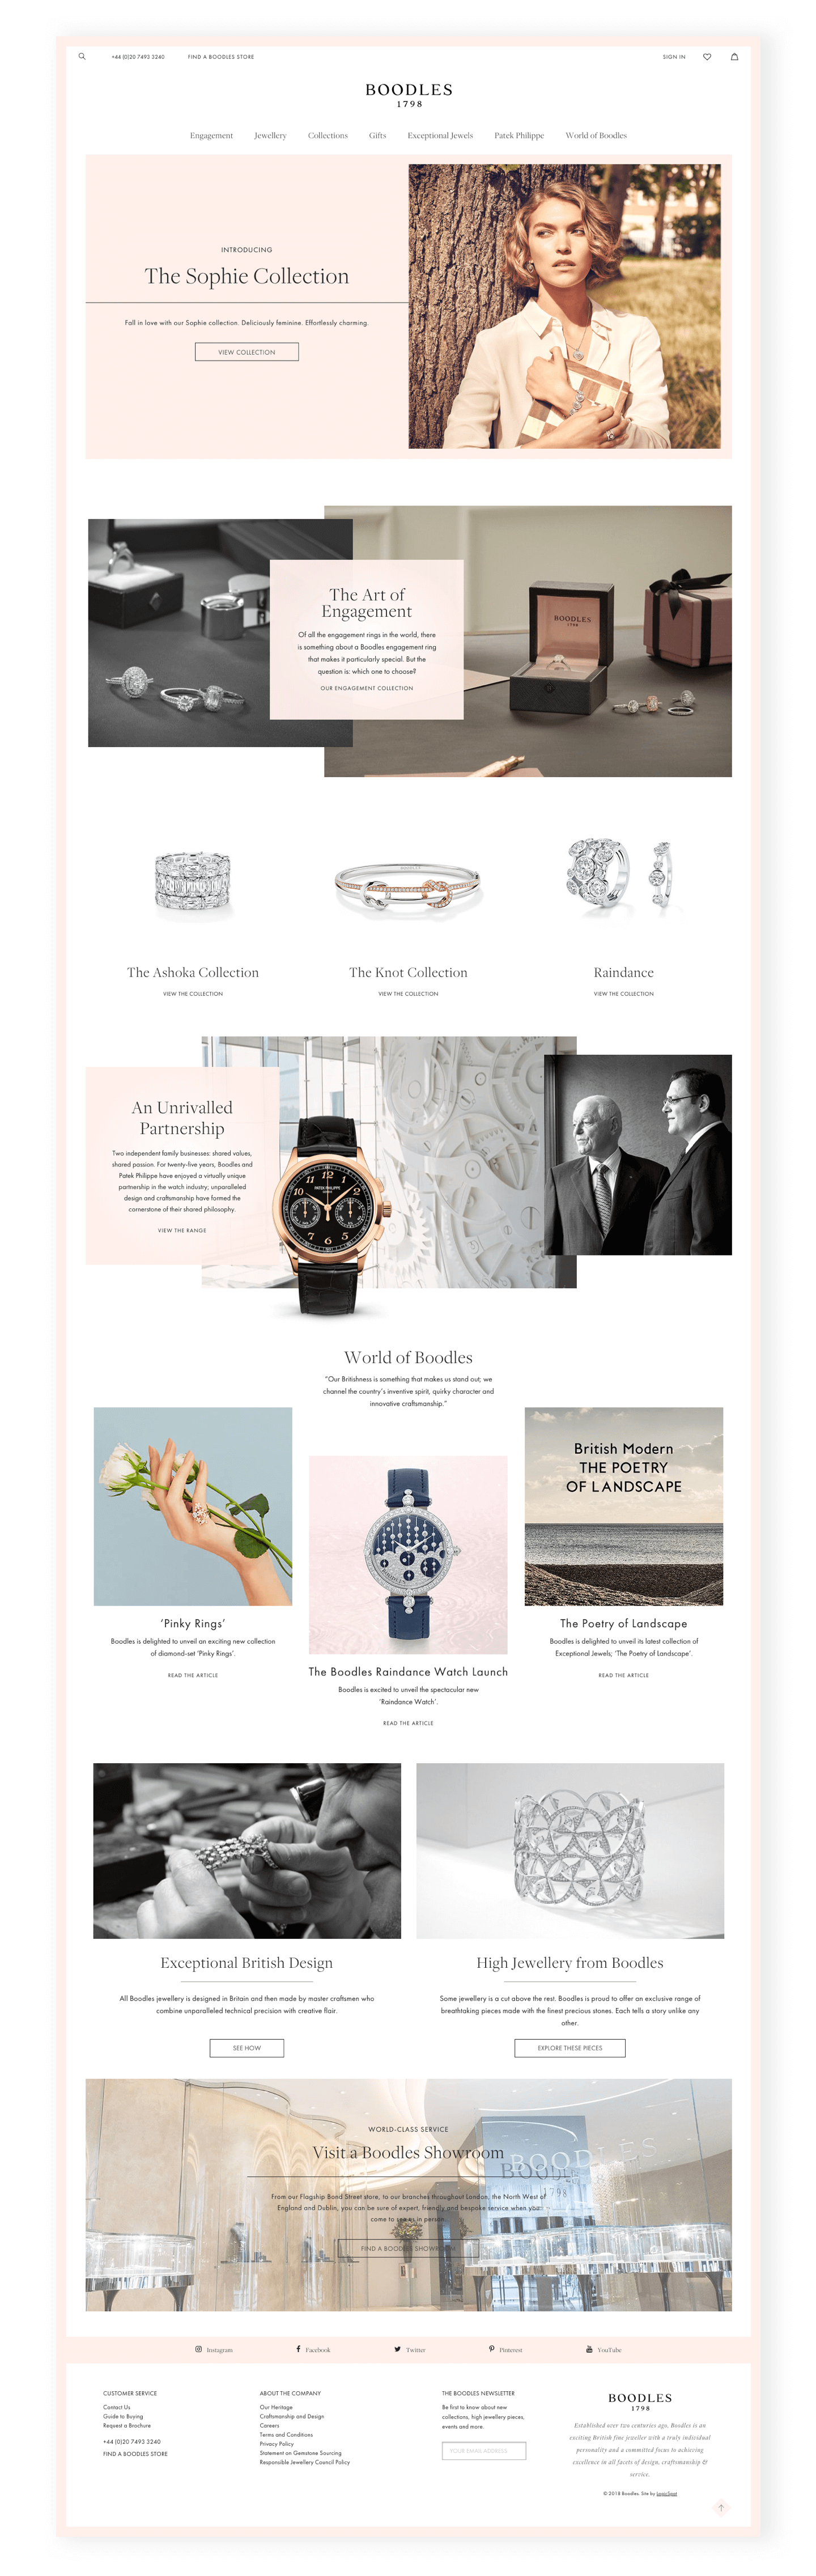 Boodles homepage screen